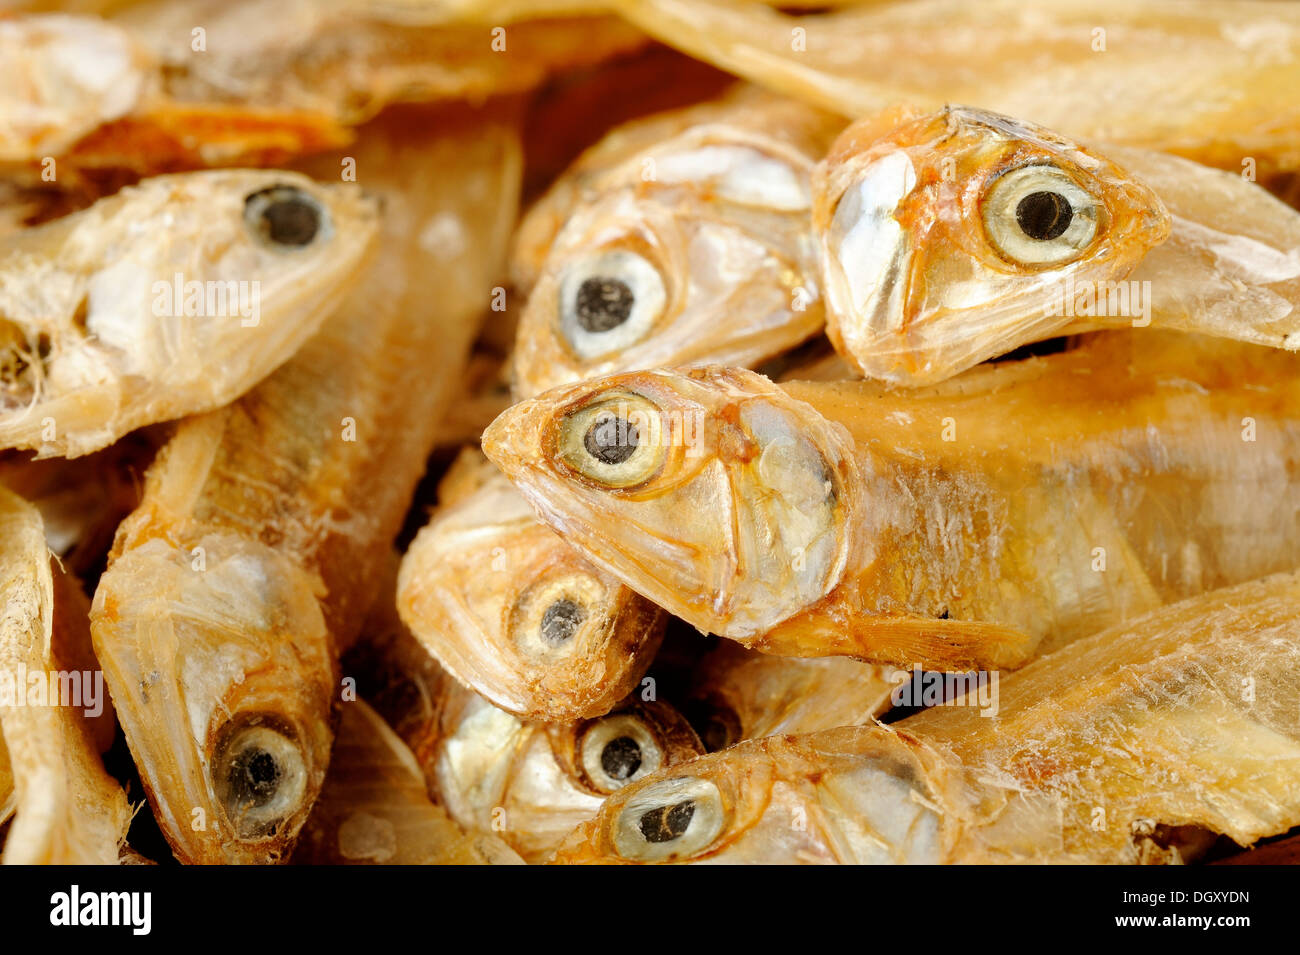 Dried salted fish - Stock Image